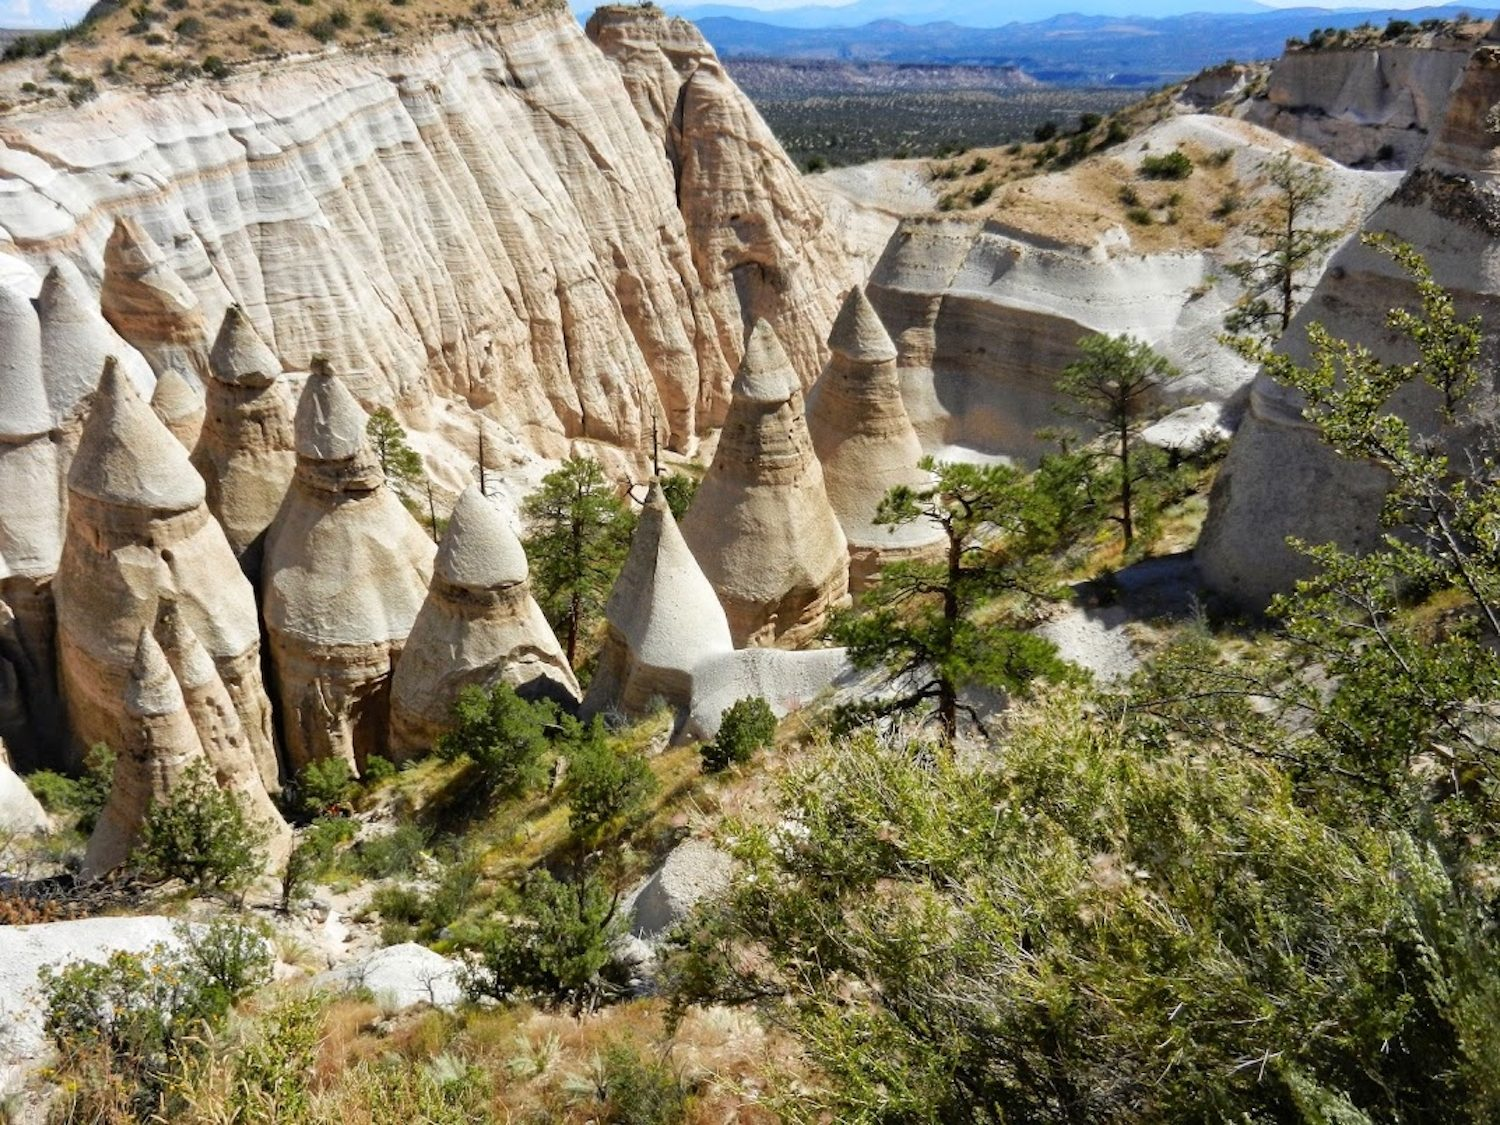 Kasha-Katuwe Tent Rocks National Monument in New Mexico